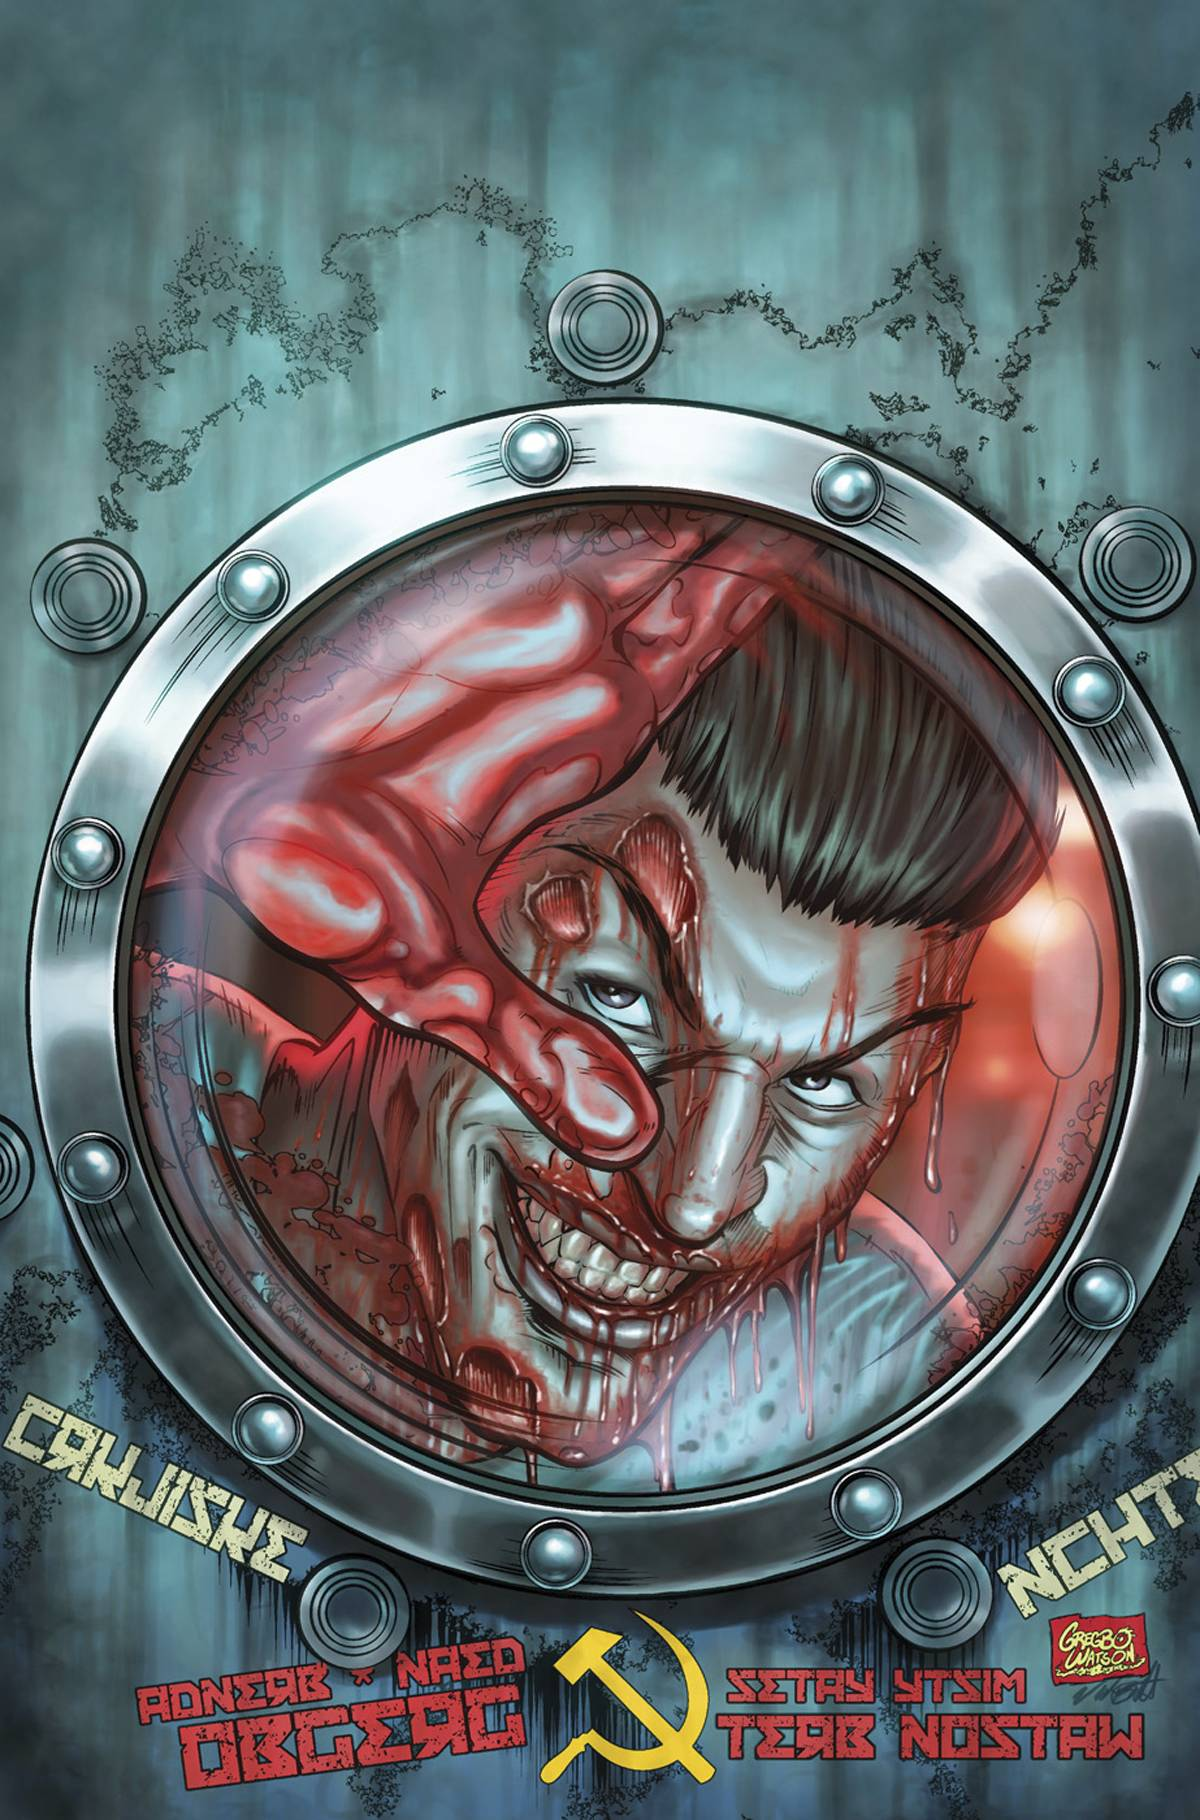 Grimm Fairy Tales Grimm Tales of Terror Volume 2 #4 A Cover